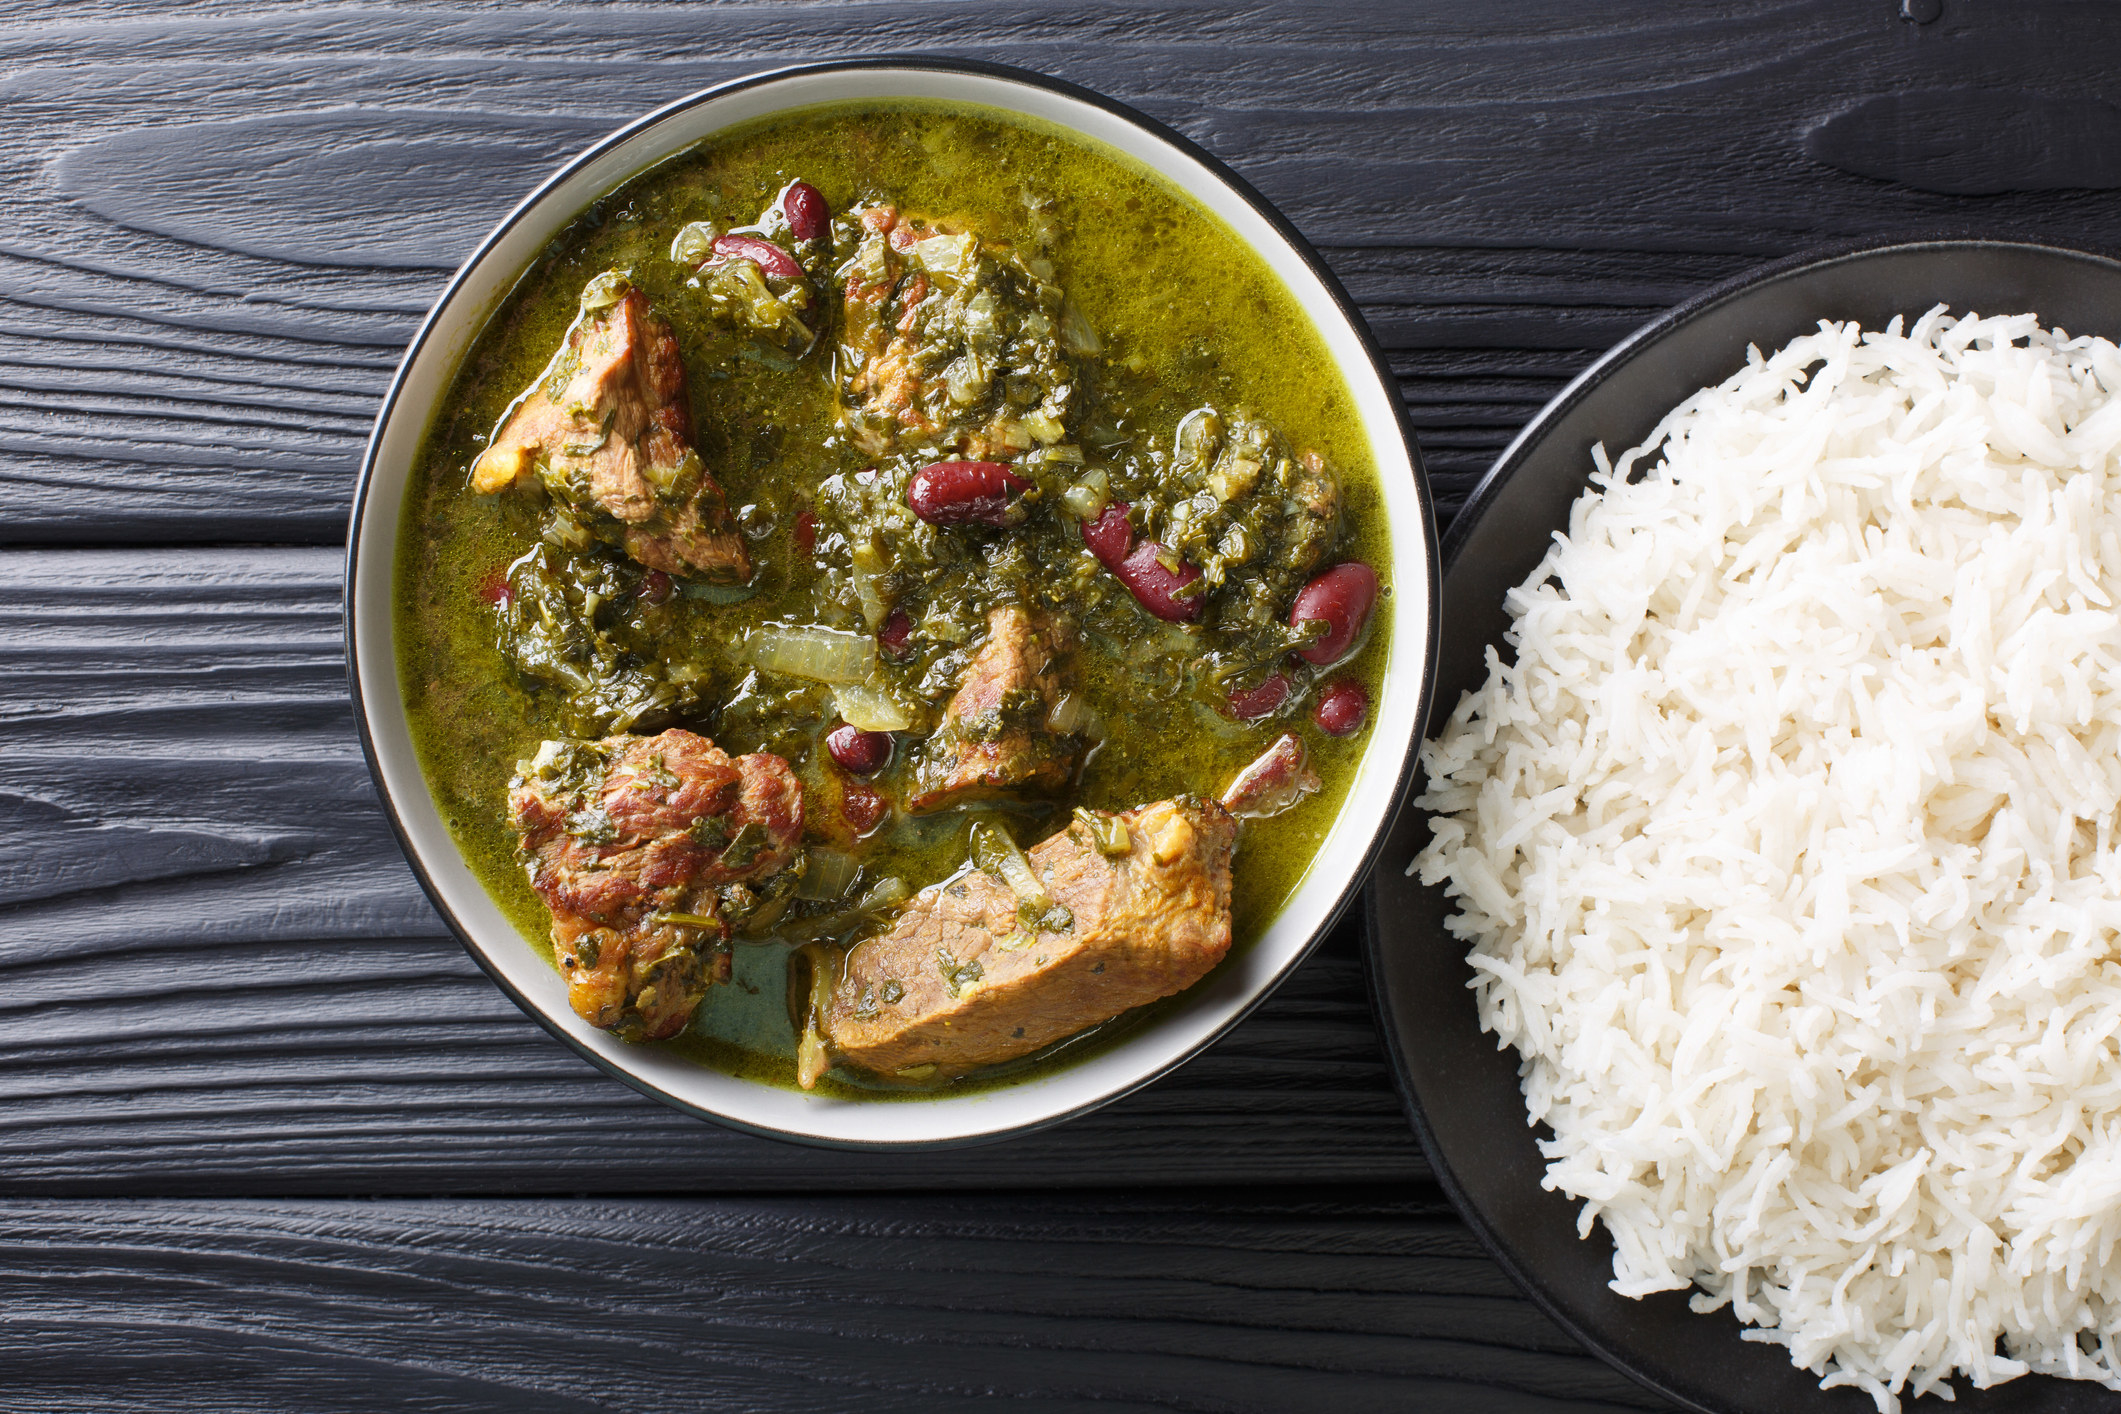 Iranian meat and bean stew with rice on the side.